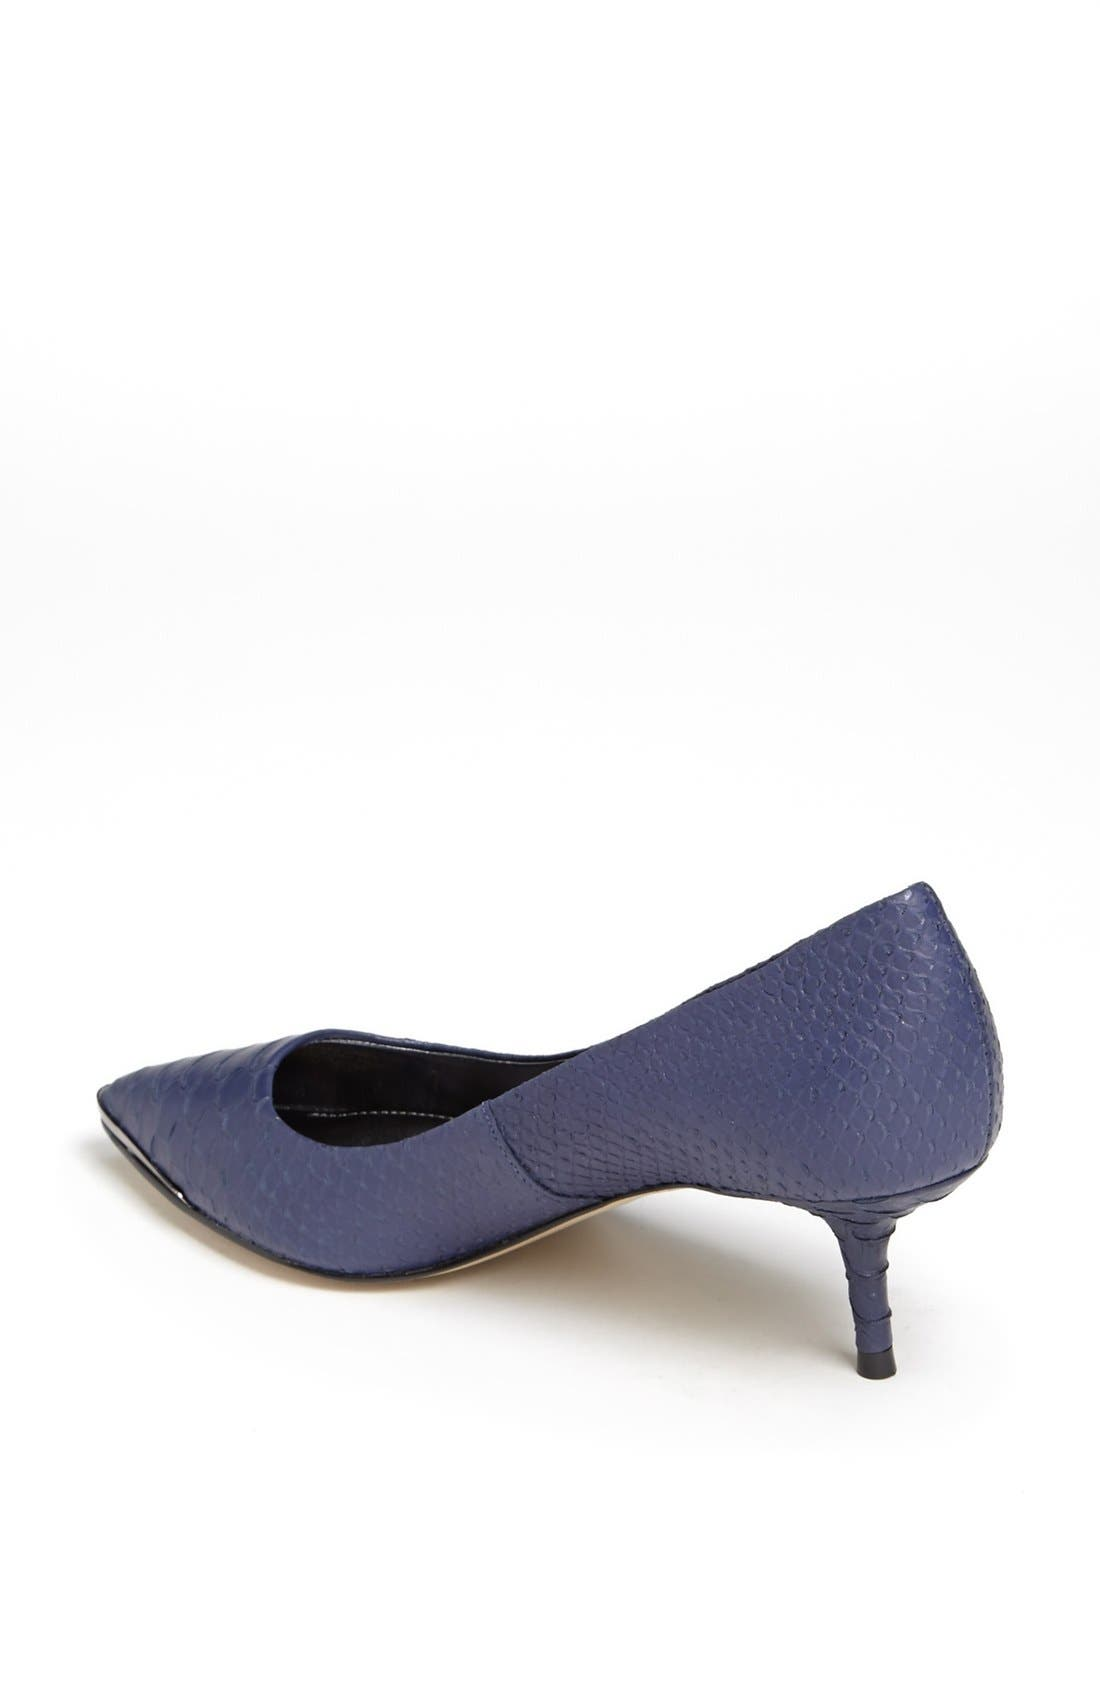 Alternate Image 2  - Enzo Angiolini 'Graysn' Embossed Leather Pump